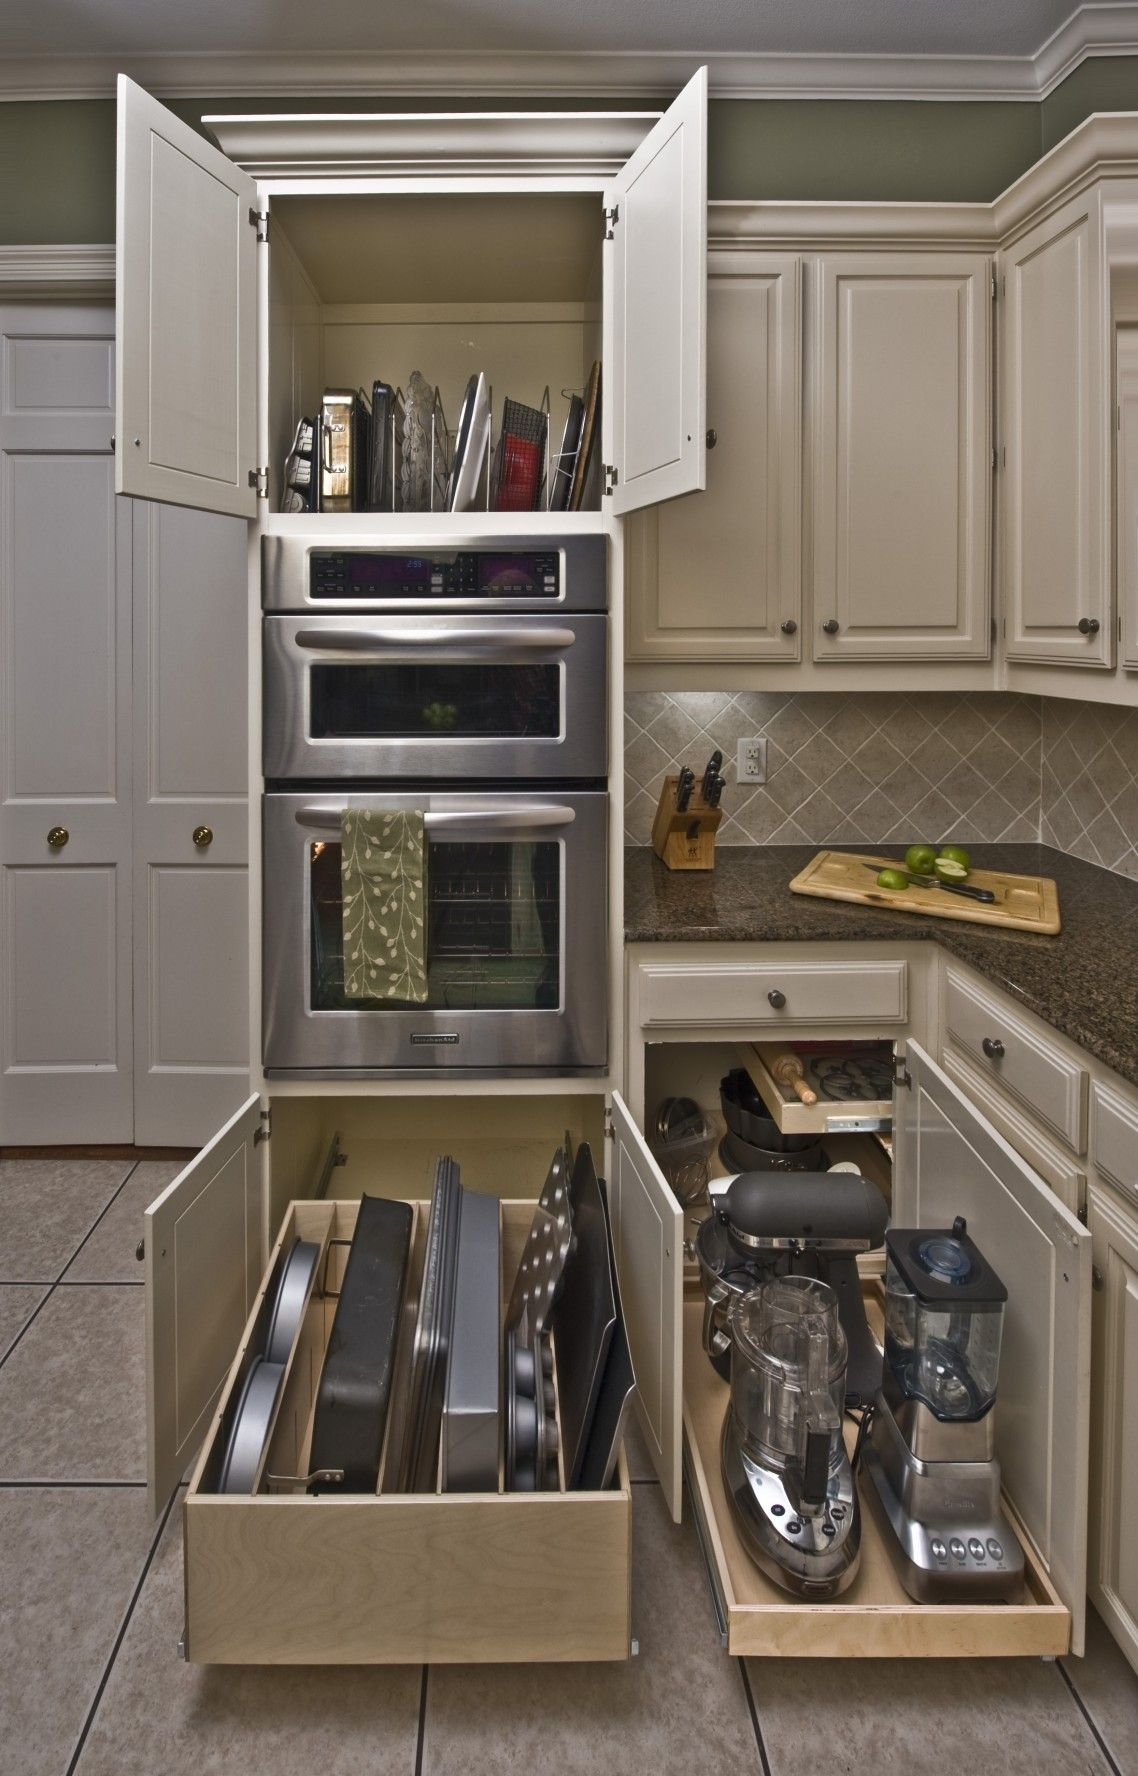 organizers shelving pinterest source storage pull added figandthyme modern and out kitchen hunt cindy design cabinet shelves magnificent on pin kitchens photo by cabinetry